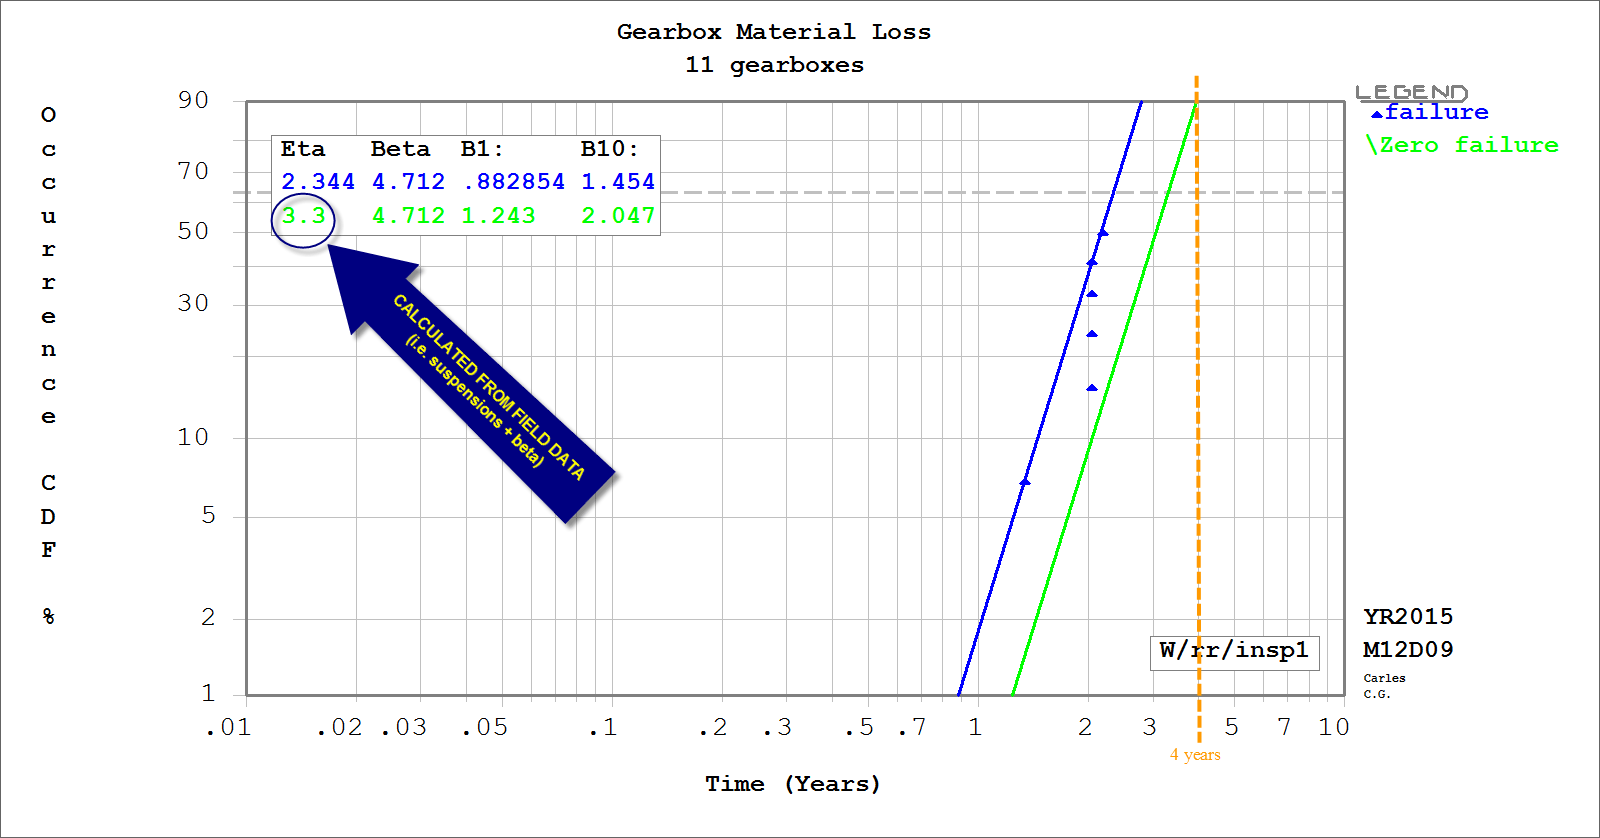 In the plot the weibayes method is the green line